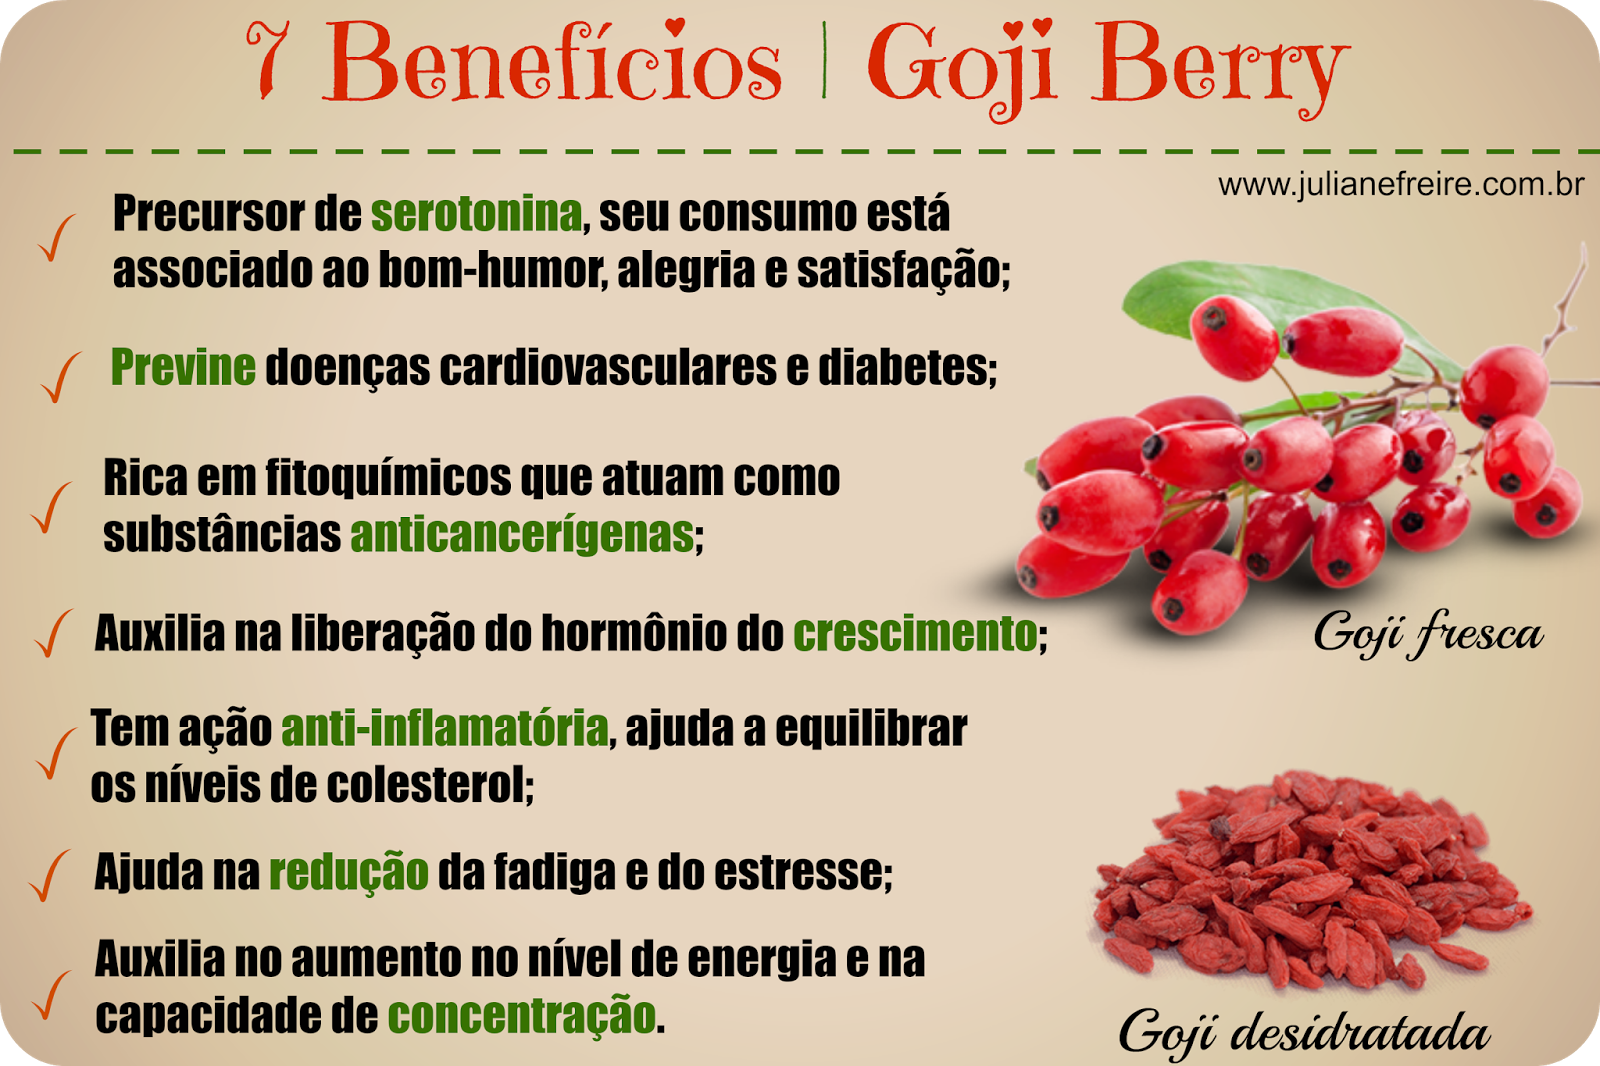 7 beneficios goji berry